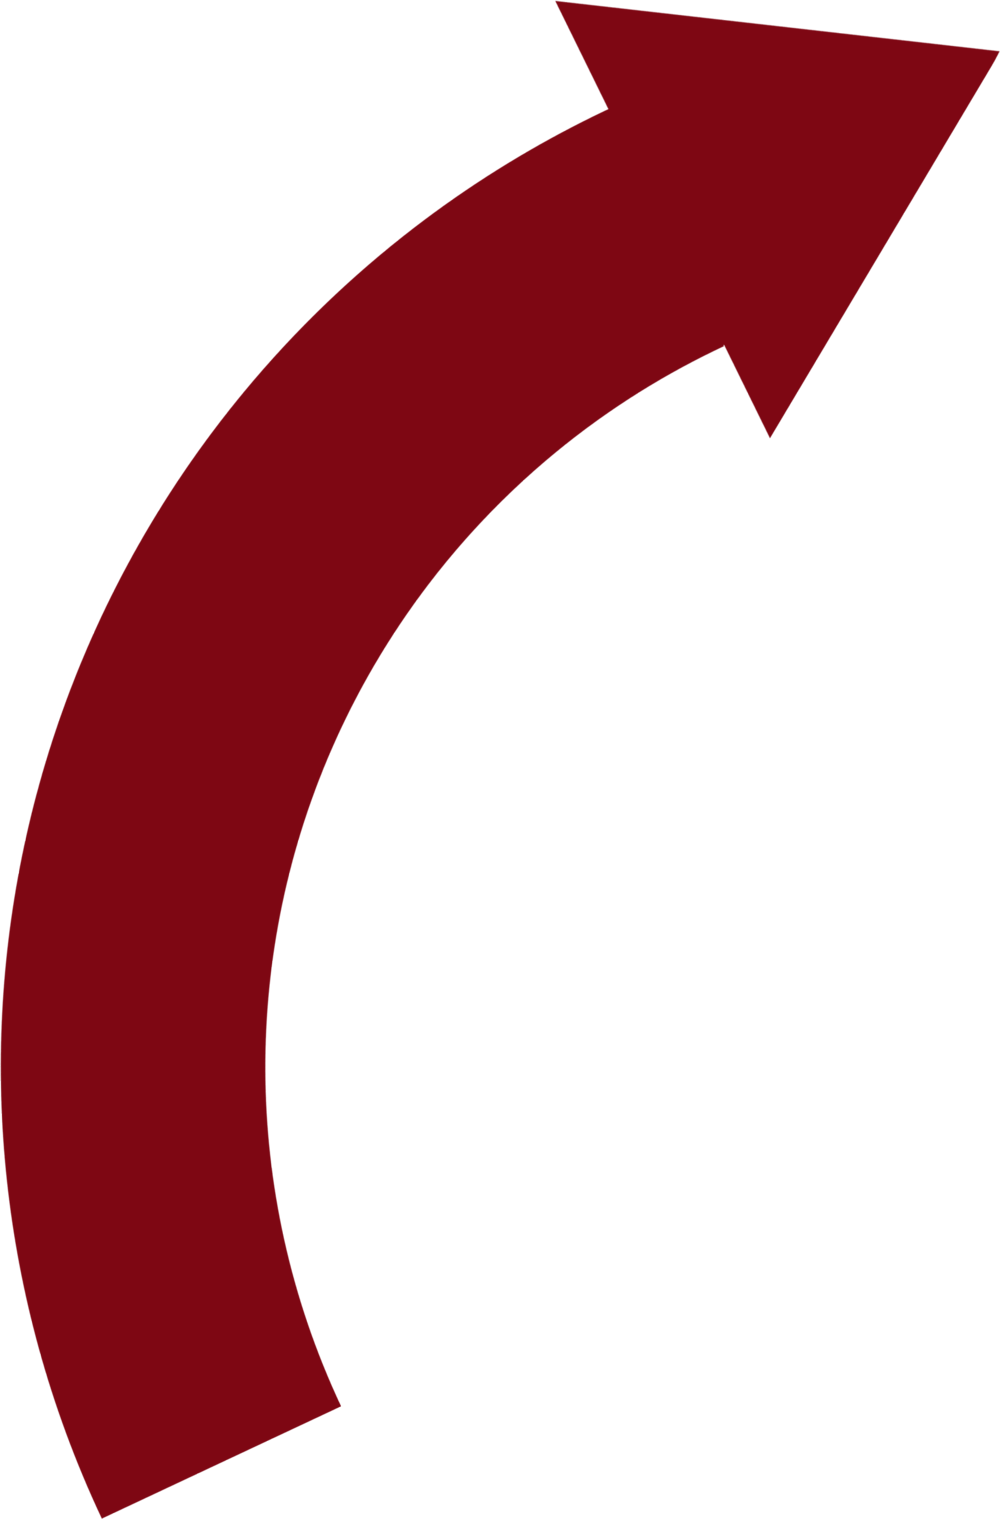 Curved Arrow Png - Cliparts.co